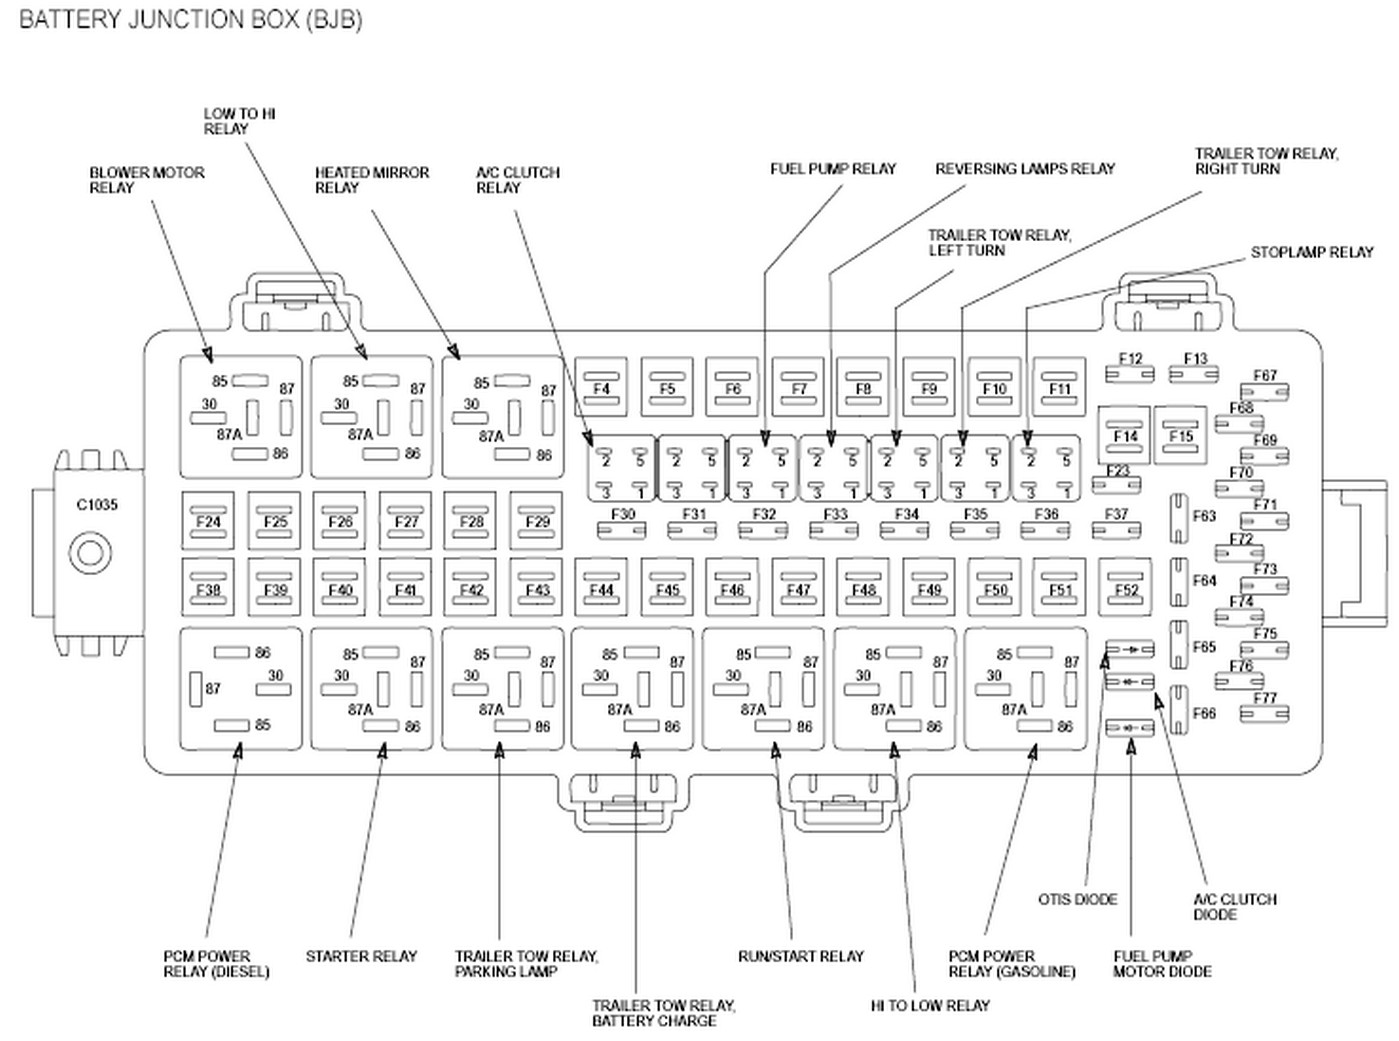 2011 ford f250 fuse box diagram Zoinyhu 2012 f250 fuse box location 2009 ford fusion fuse box diagram f250 fuse box location at mifinder.co